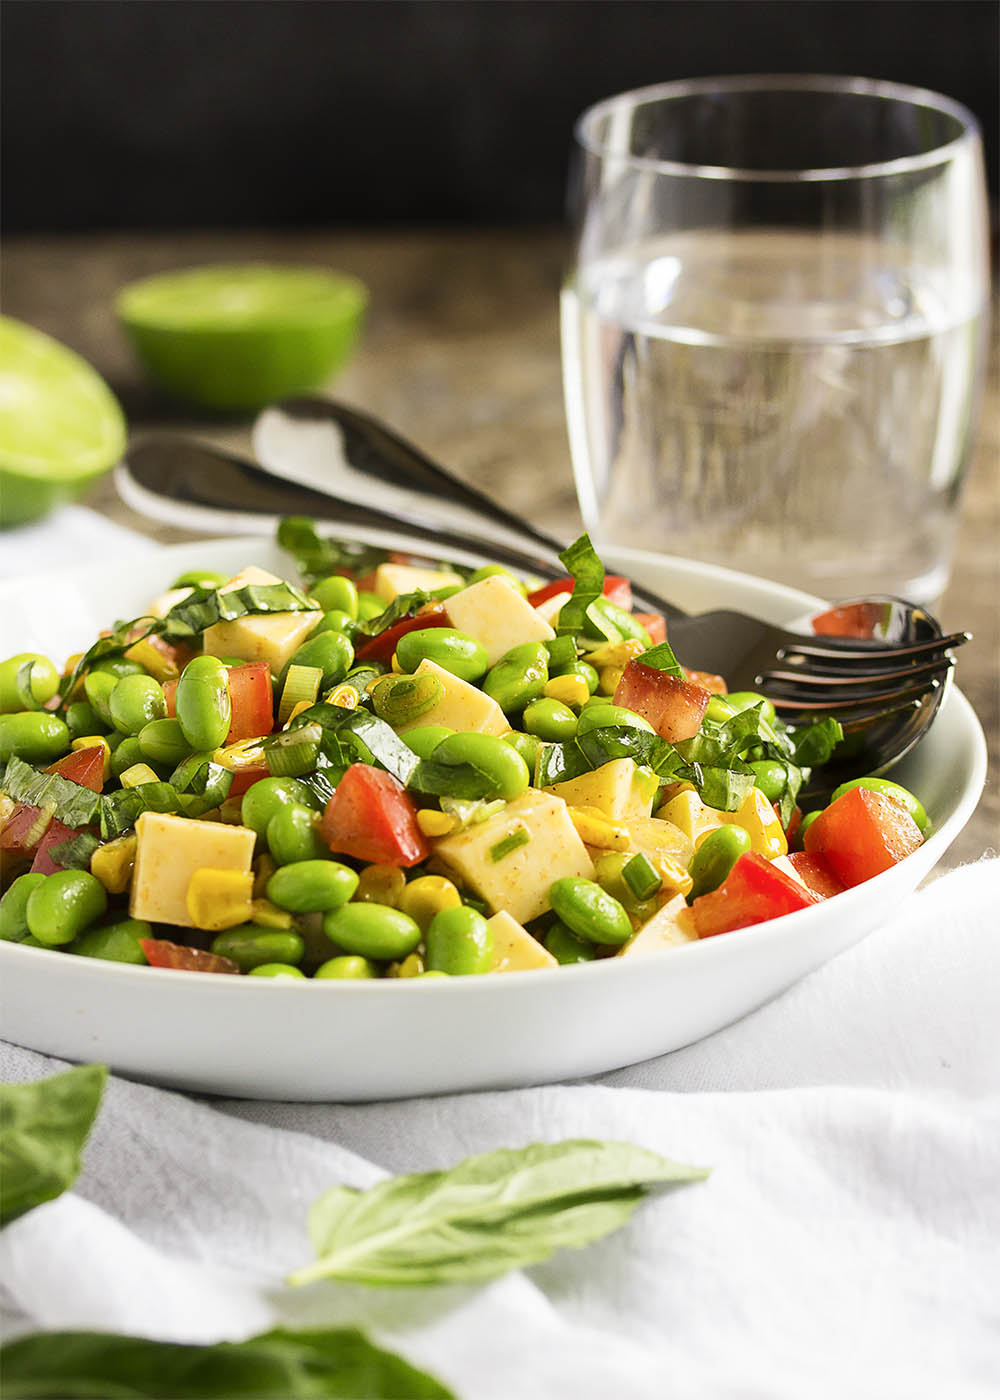 A bowl of edamame, tomato, and corn salad with serving spoon in the bowl.